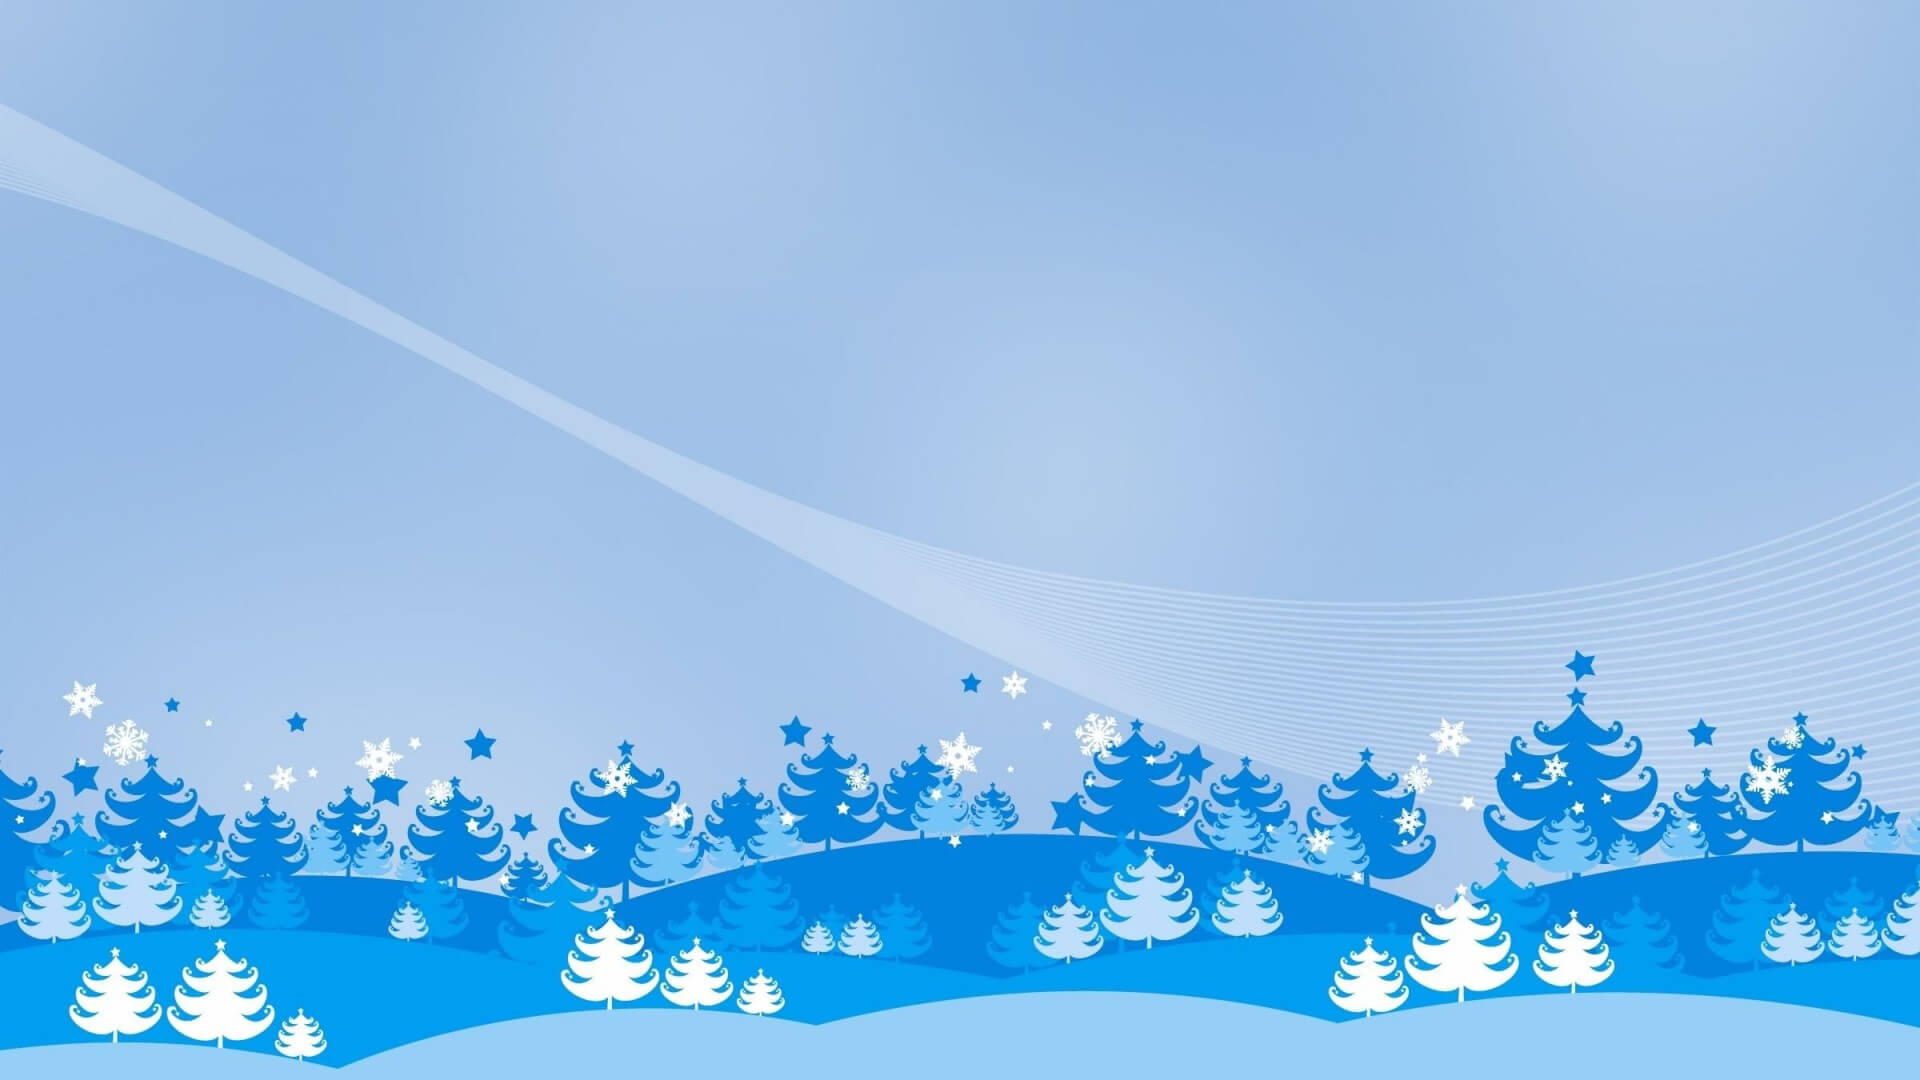 002 Happy Holidays Greeting Card Template Modern New Year Within Free Holiday Photo Card Templates